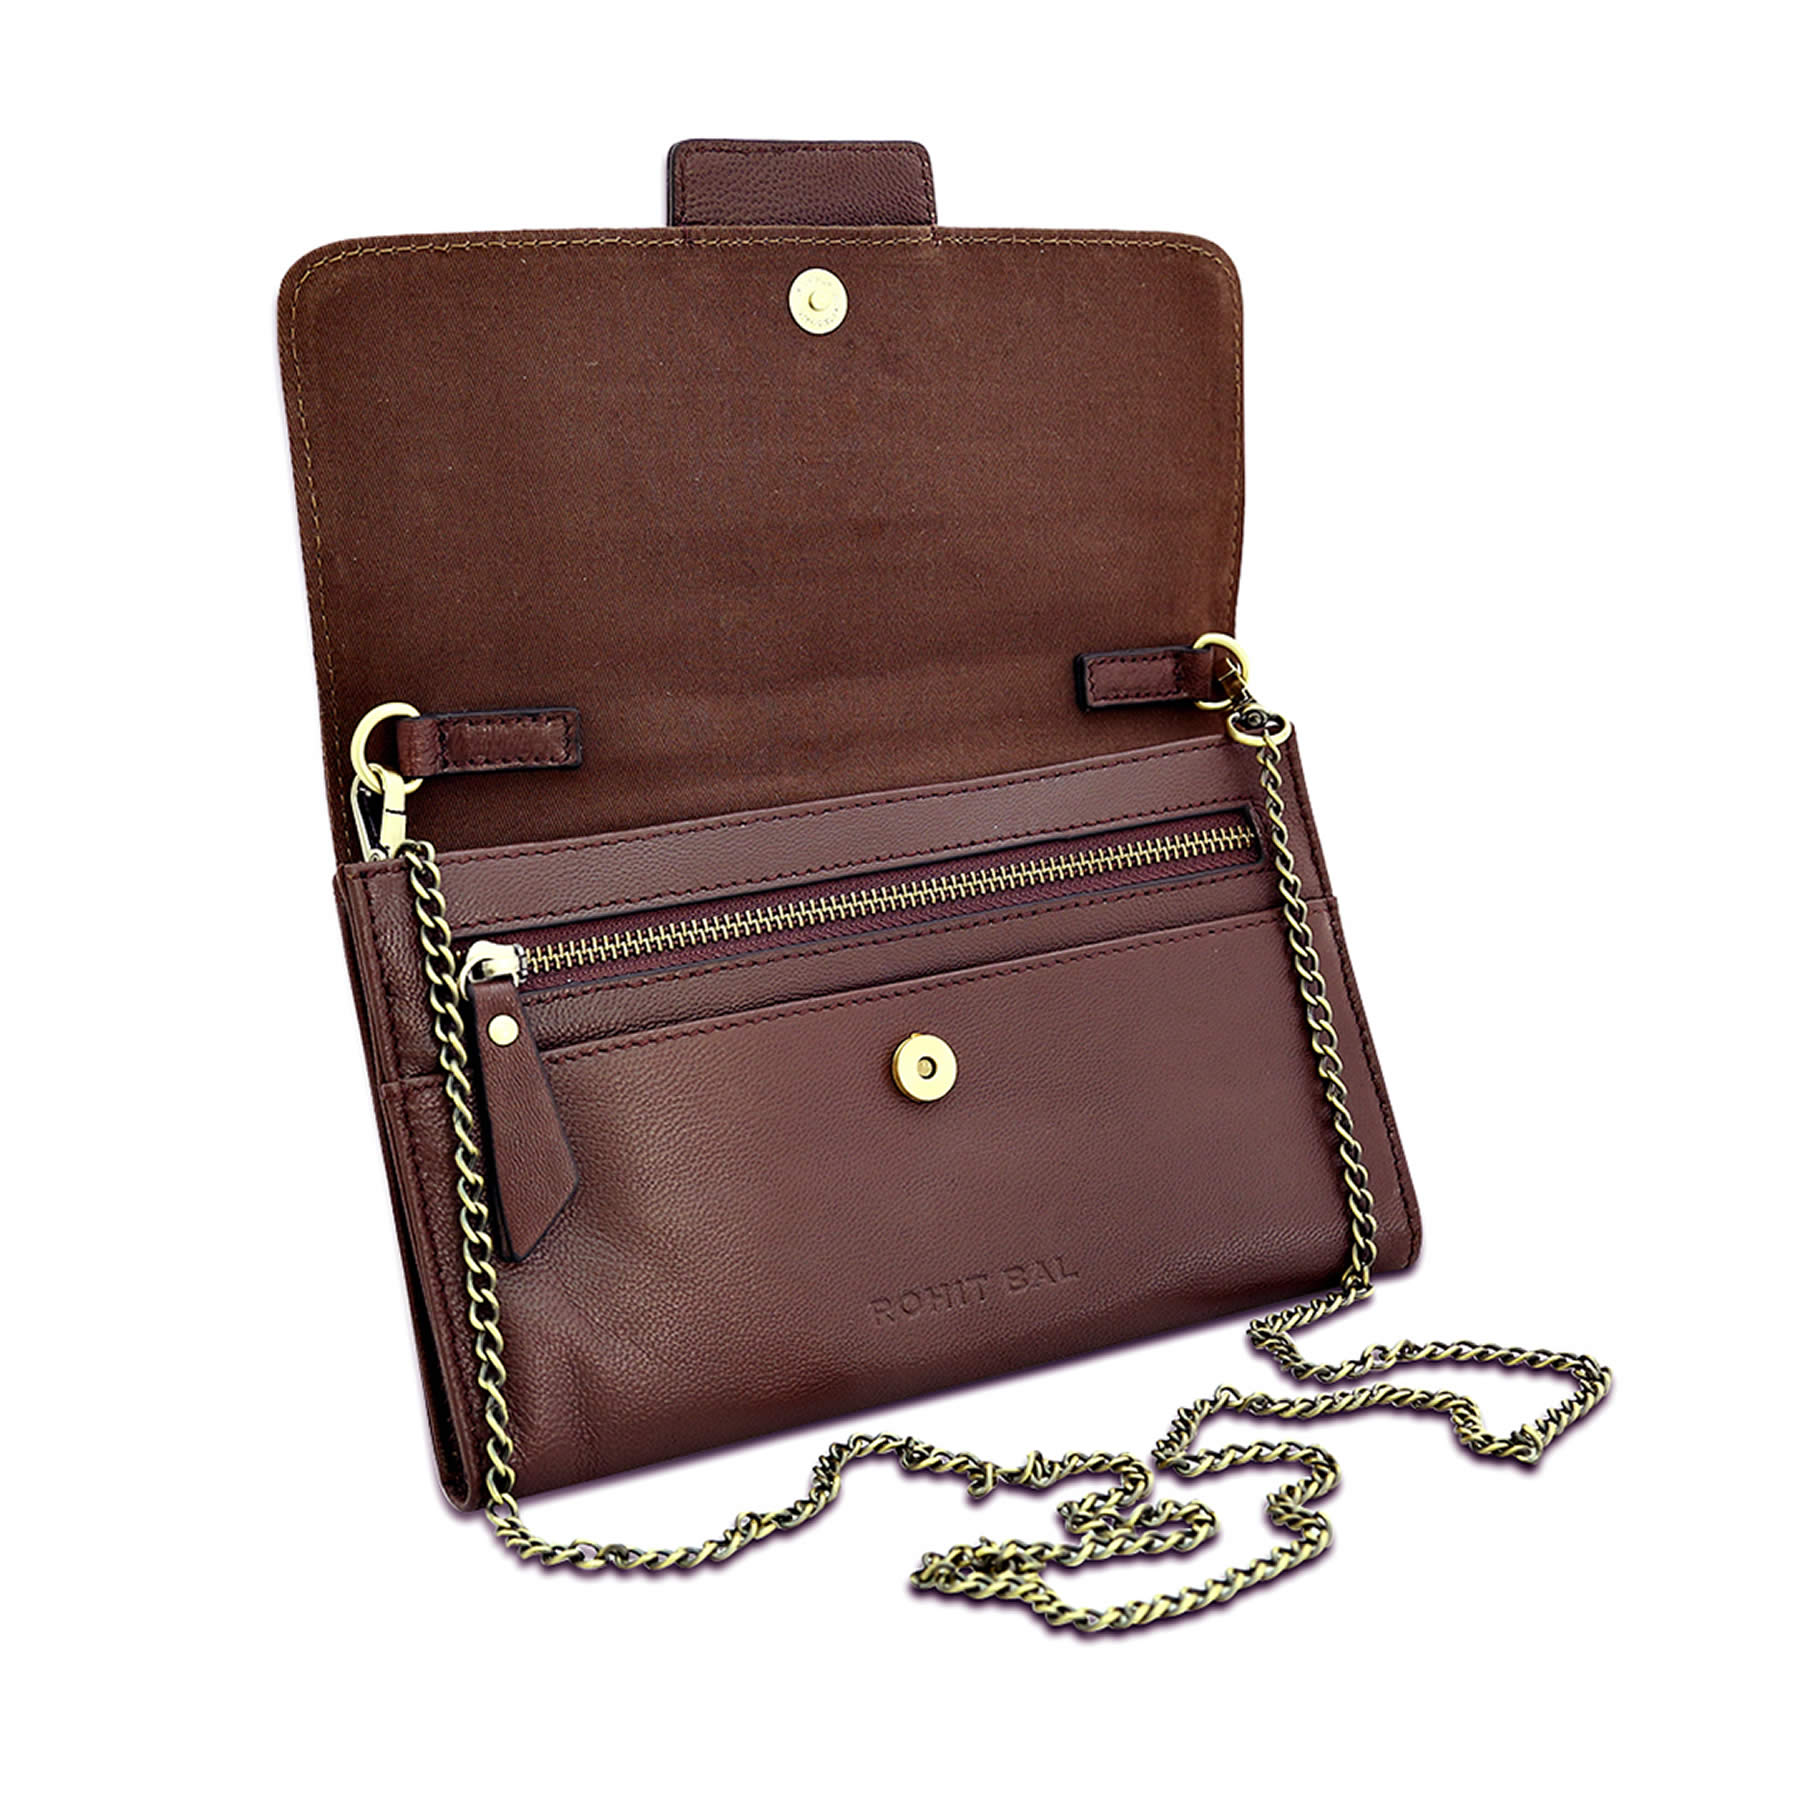 Rohit Bal Brown Leather Sling Bag for Women